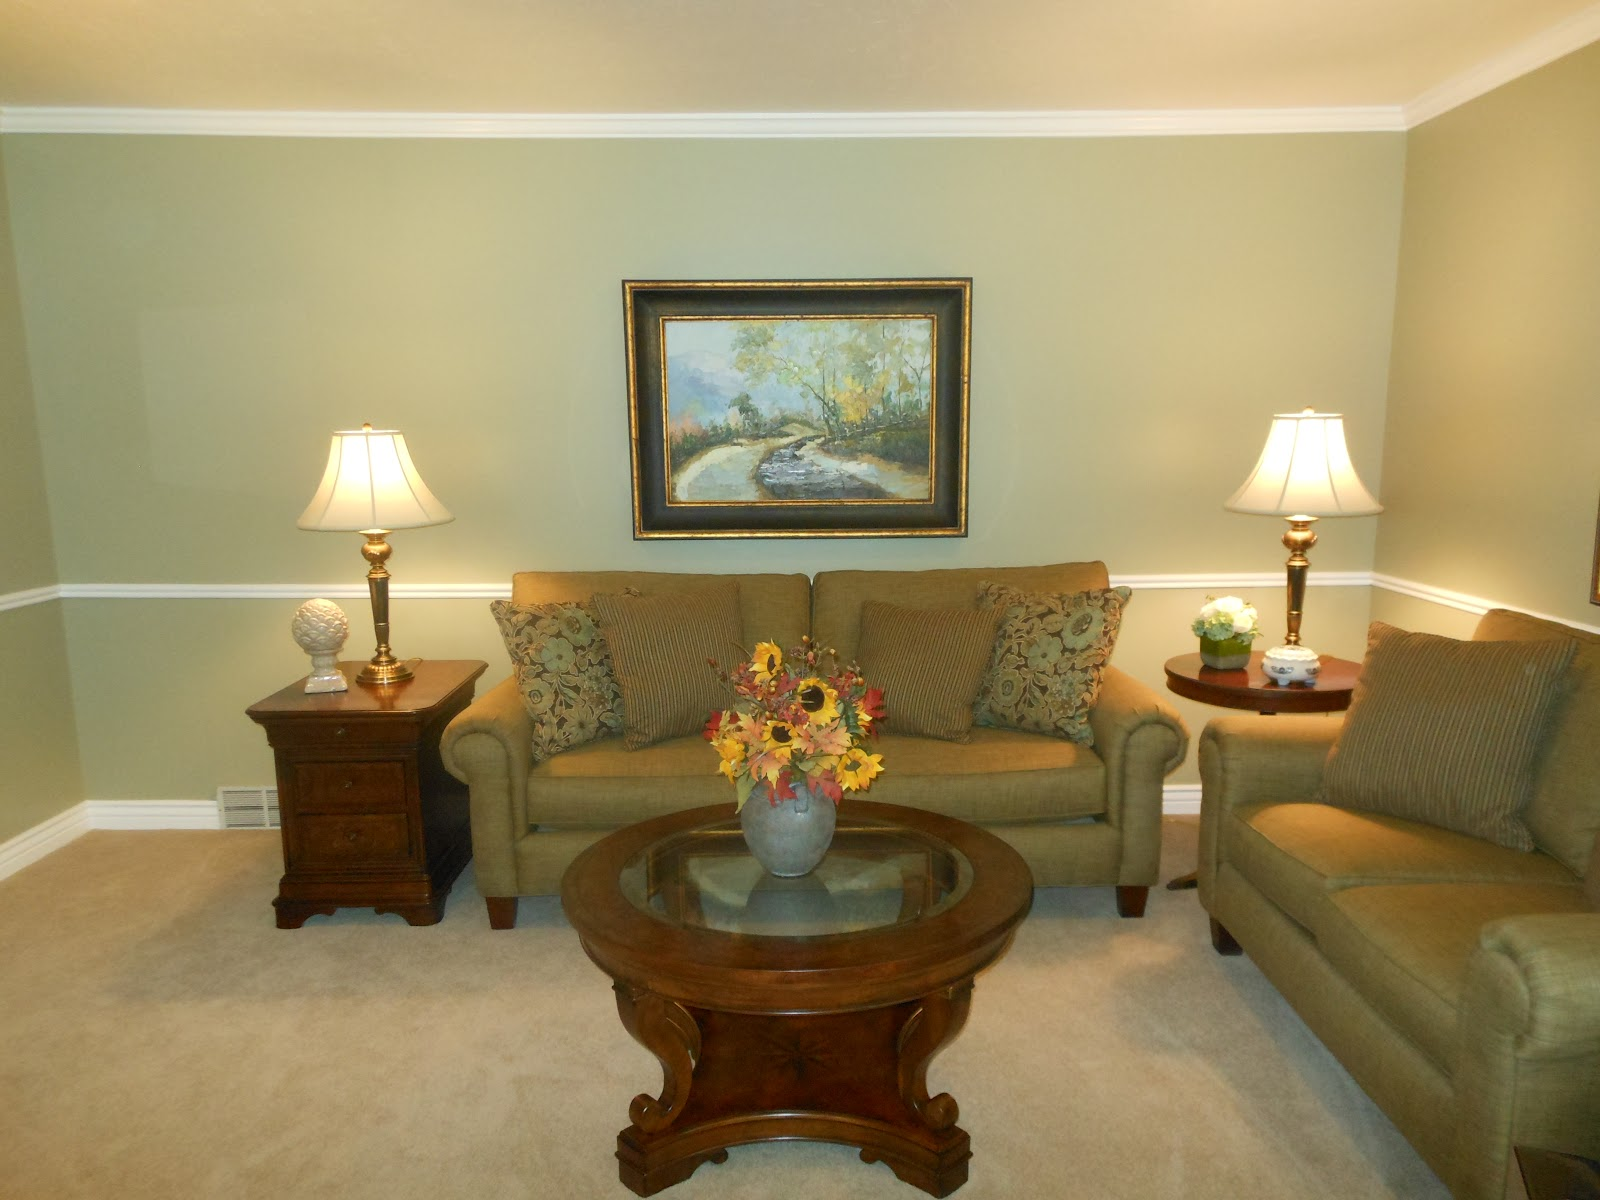 Client Reveal: Formal Living Room. Wednesday, October 03, 2012